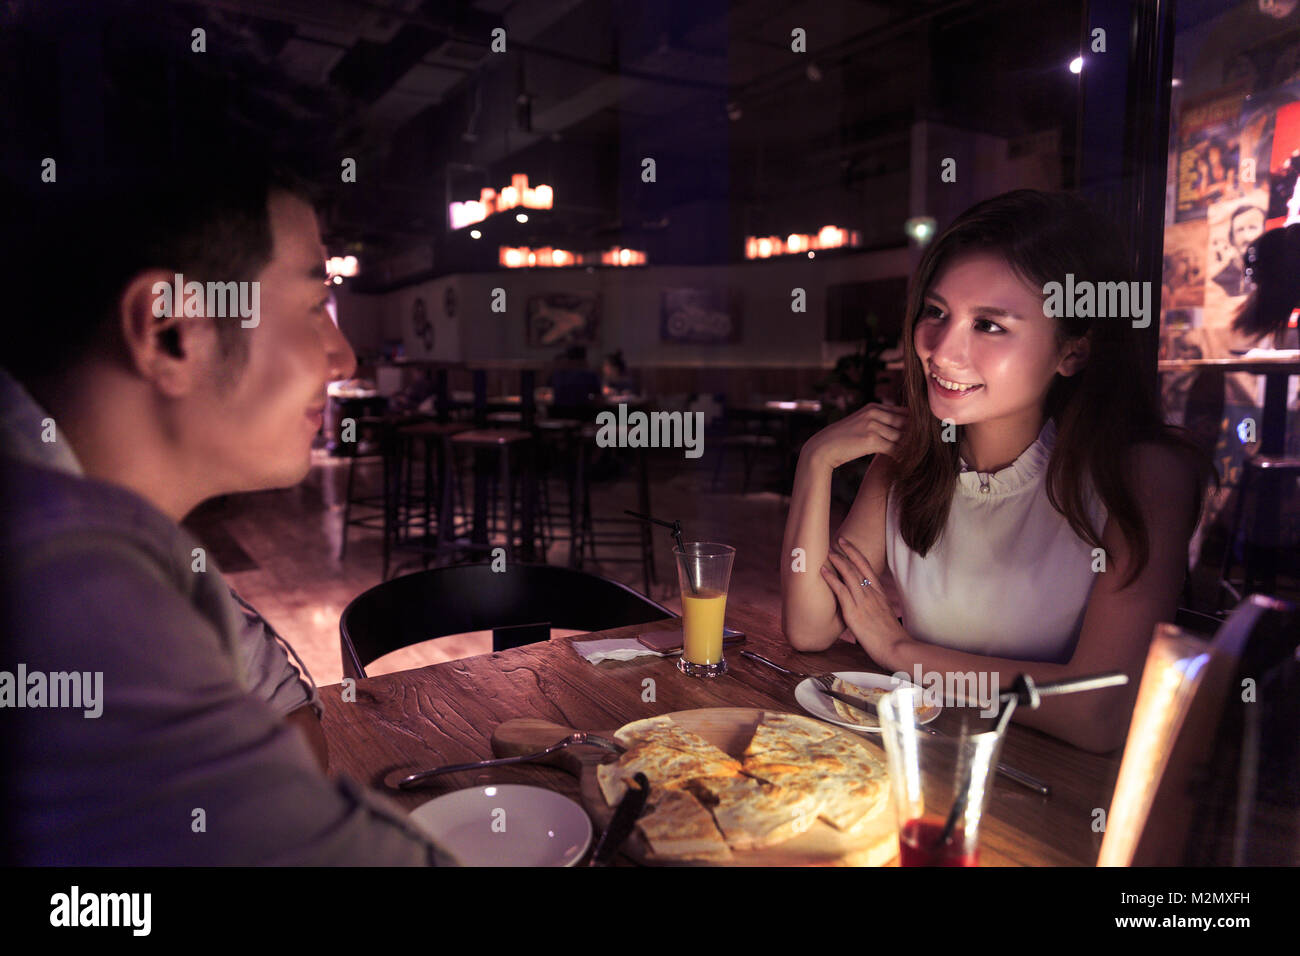 Night life for young couples - Stock Image